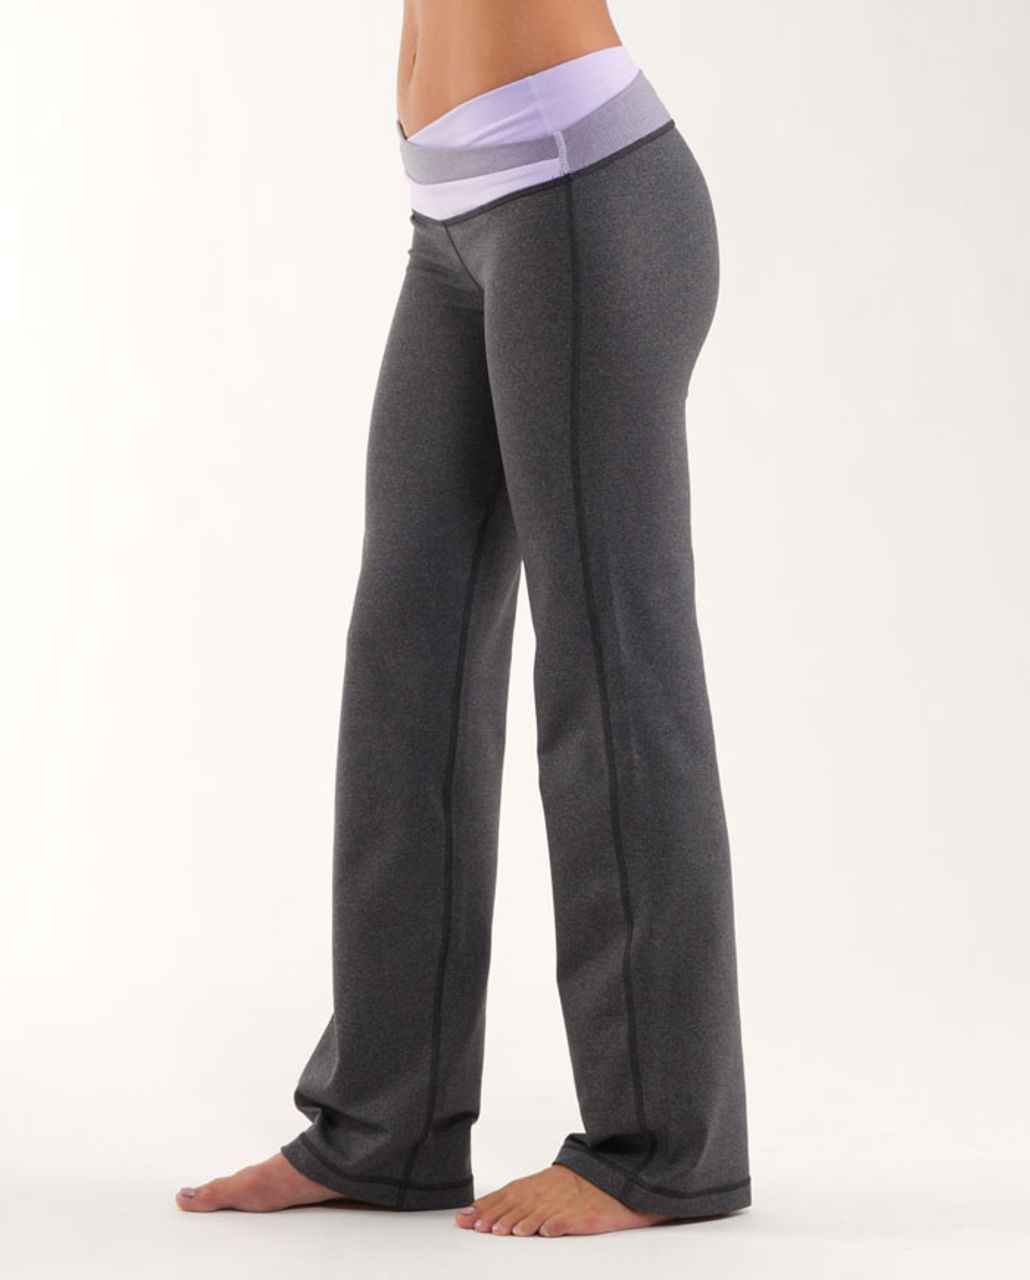 Lululemon Astro Pant (Regular) - Heathered Coal /  Lilac /  Lilac Heatehred Coal Wee Stripe